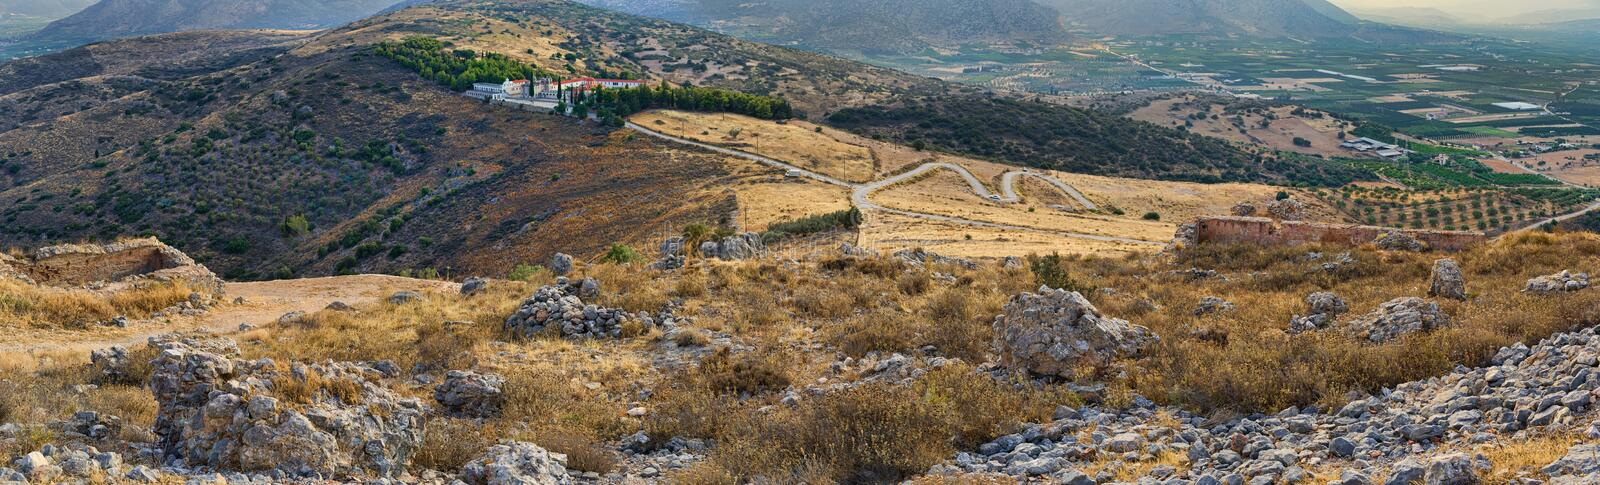 Panorama od Monastery Agion Anargiron above Argos. Monastery Agion Anargiron above city of Argos, taken from the hill where the old Venetian Larissa fortress royalty free stock photo